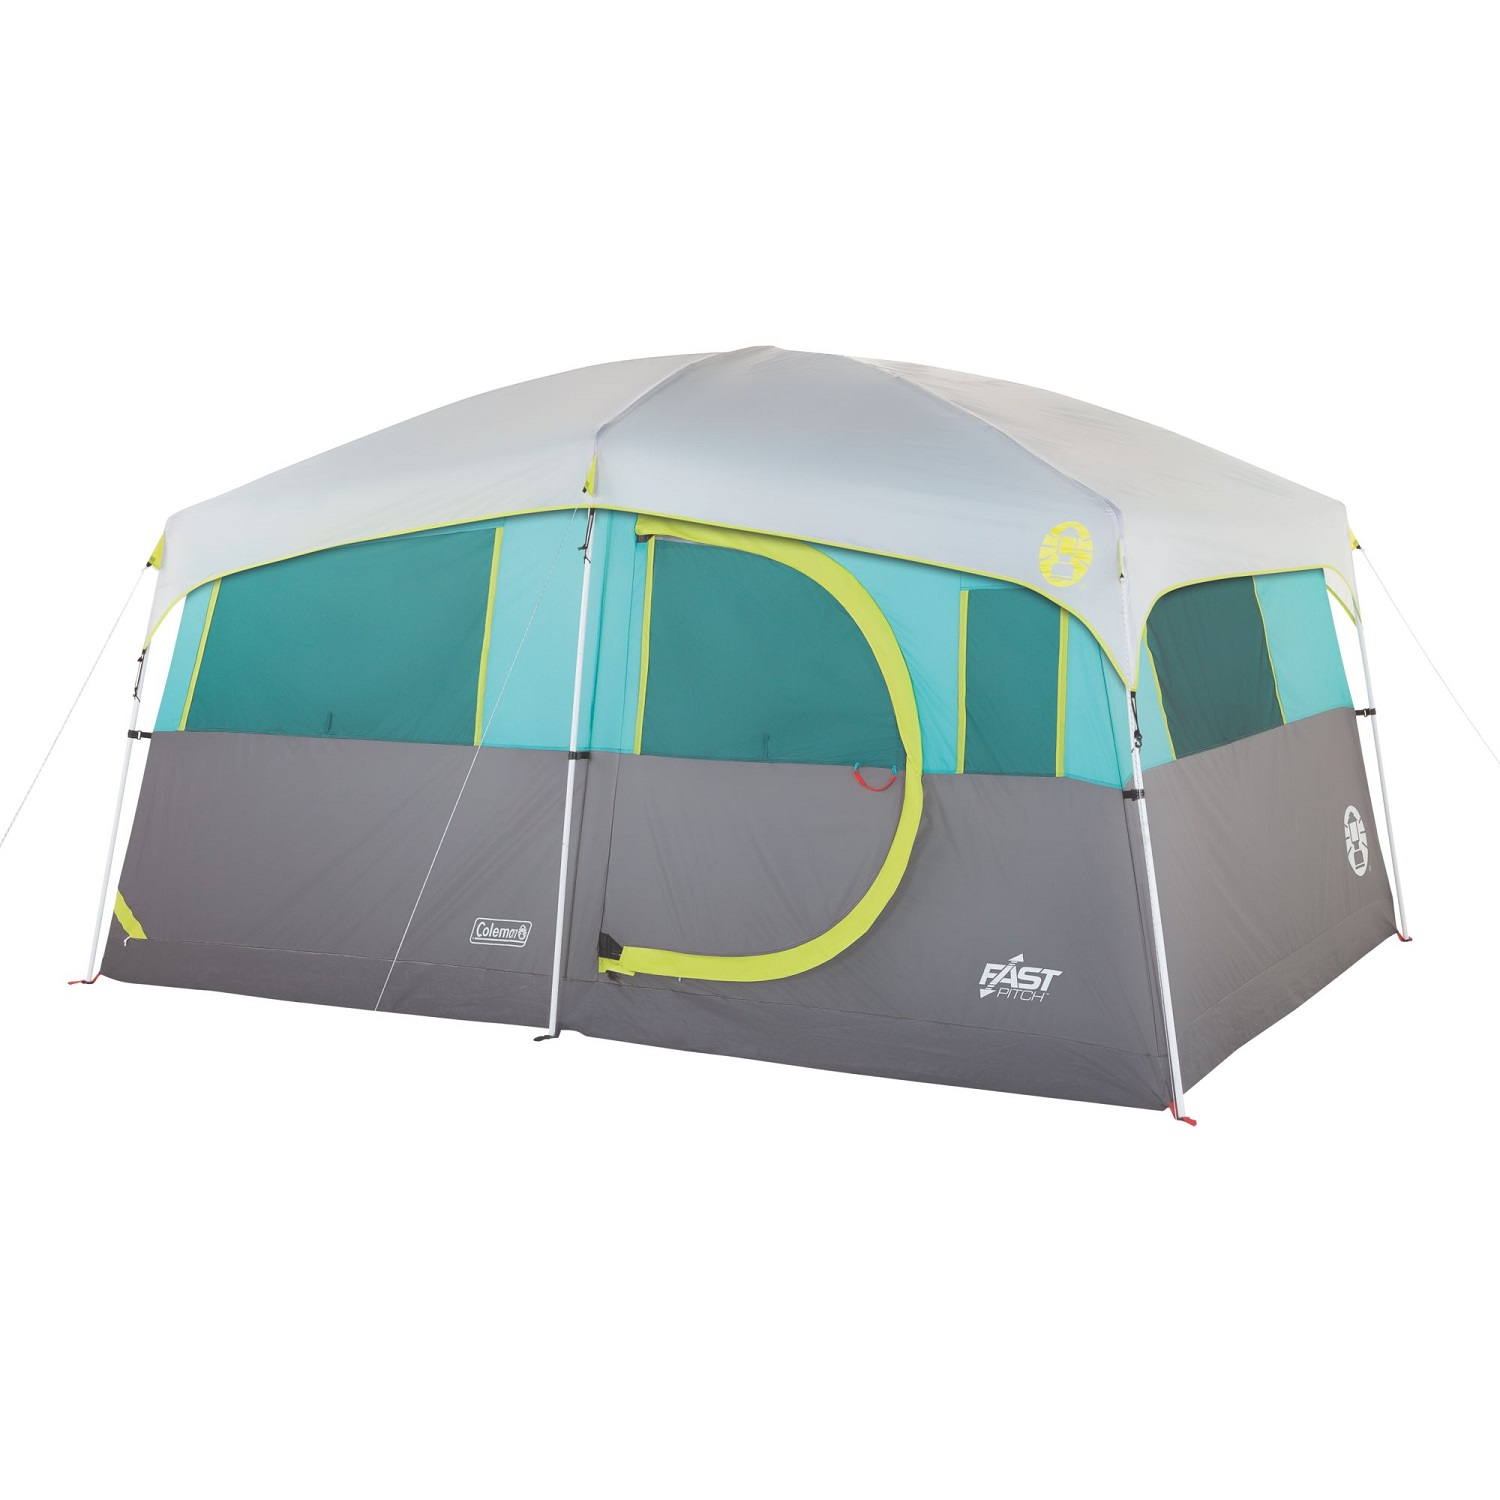 15a94d64af4 Coleman Tenaya Lake 8 Person Lighted Cabin Tent - Teal/Gray 2000029969